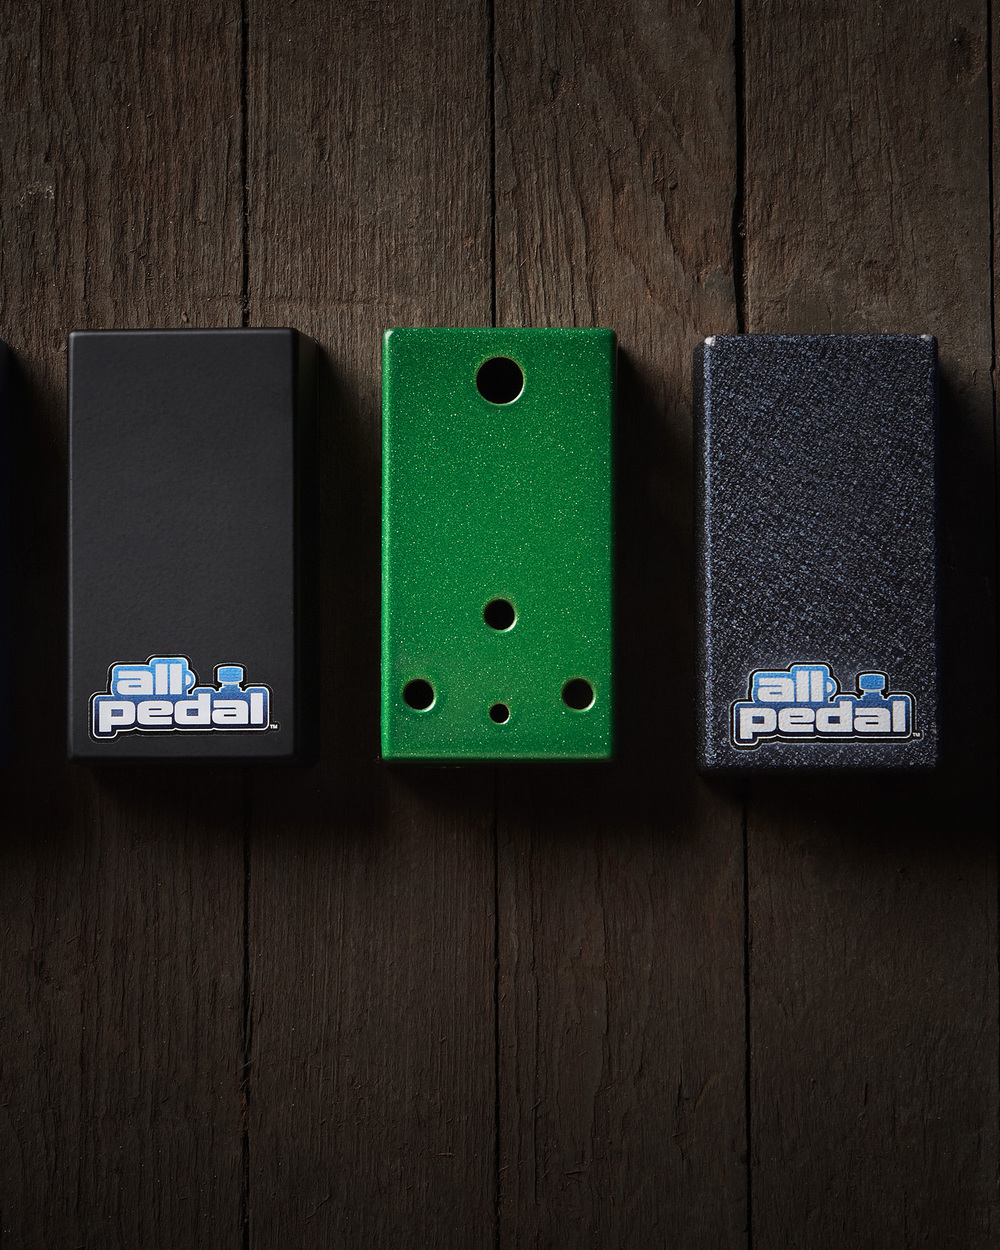 All Pedal 2 - Product Photography - Brad Rankin Studio